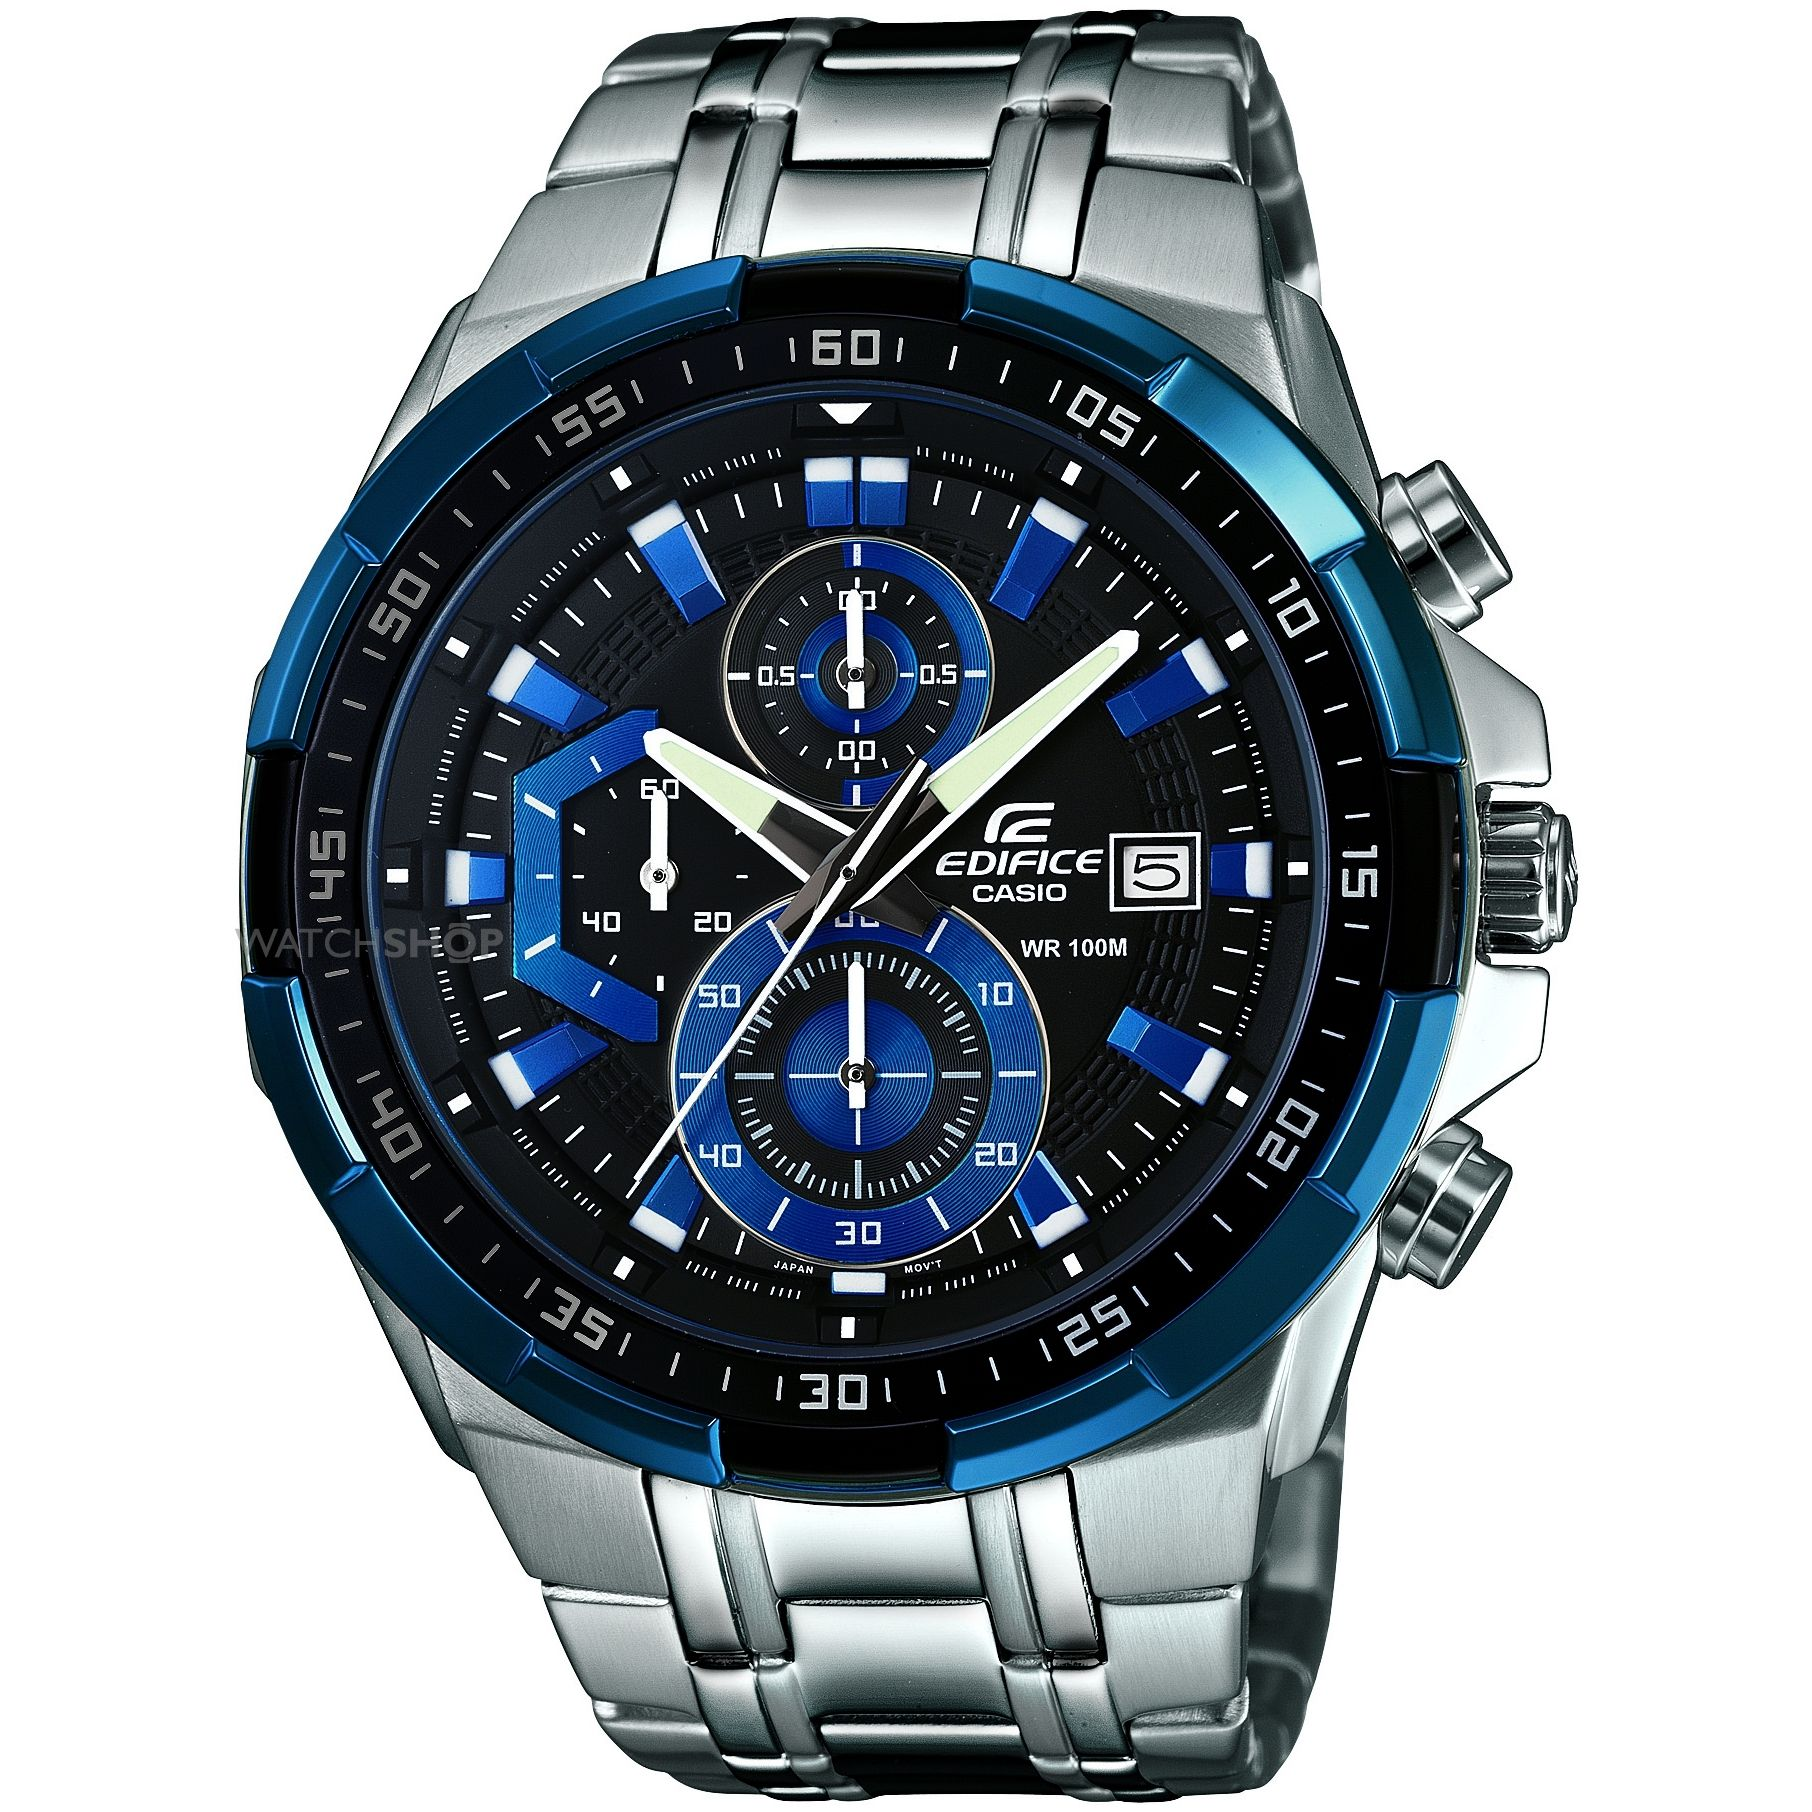 CASIO Edifice Stainless Steel EFR-539D-1A2VUEF